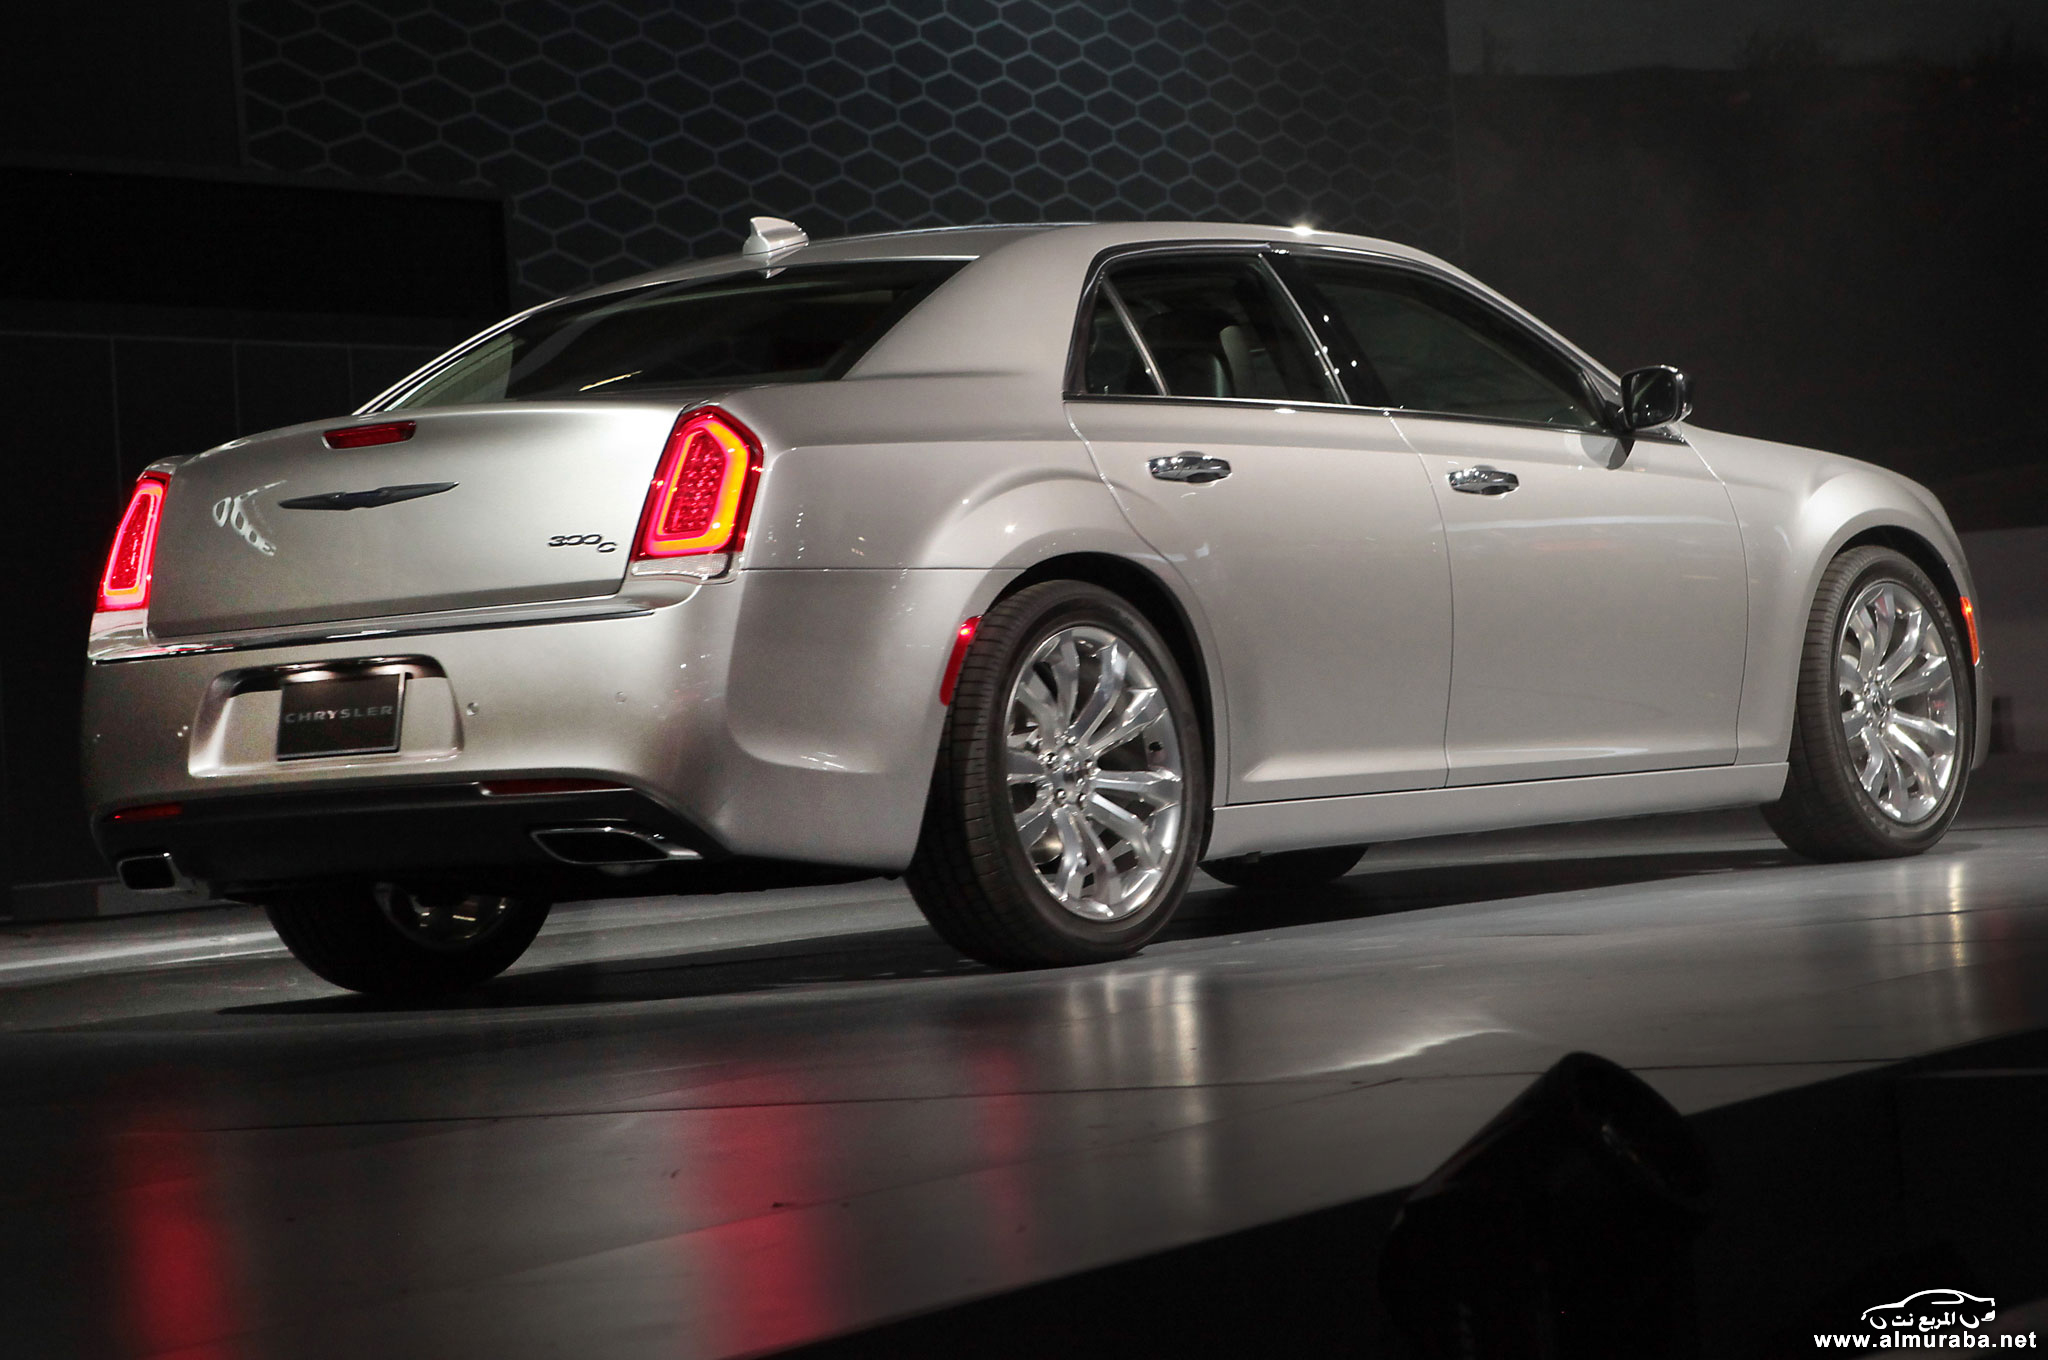 2015-chrysler-300-on-stage-rear-side-view